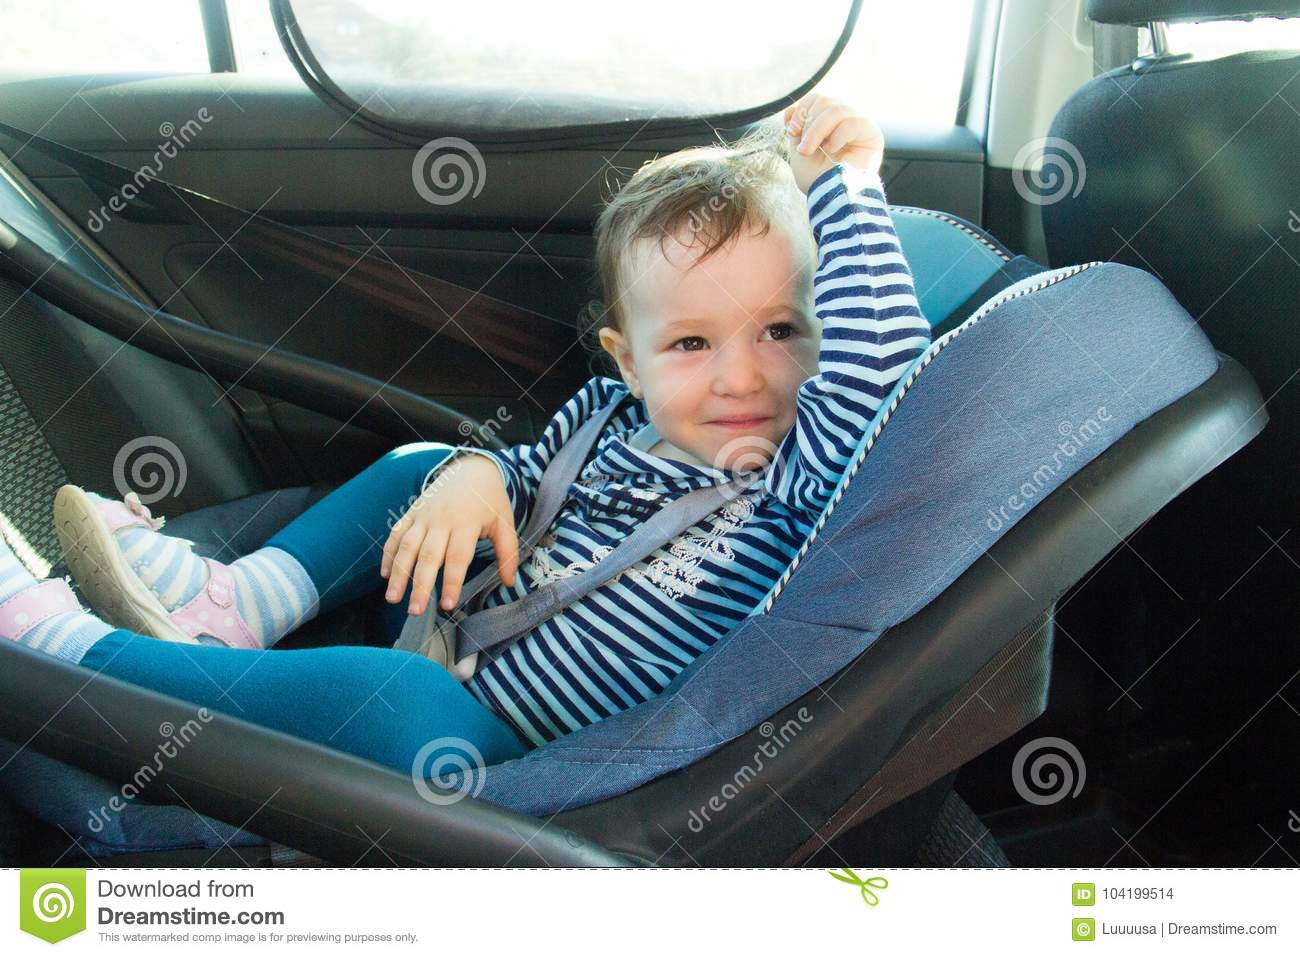 Baby smile in a safety car seat. Safety and security. one year old child girl in blue wear sit on auto cradle. Rules for the Safe